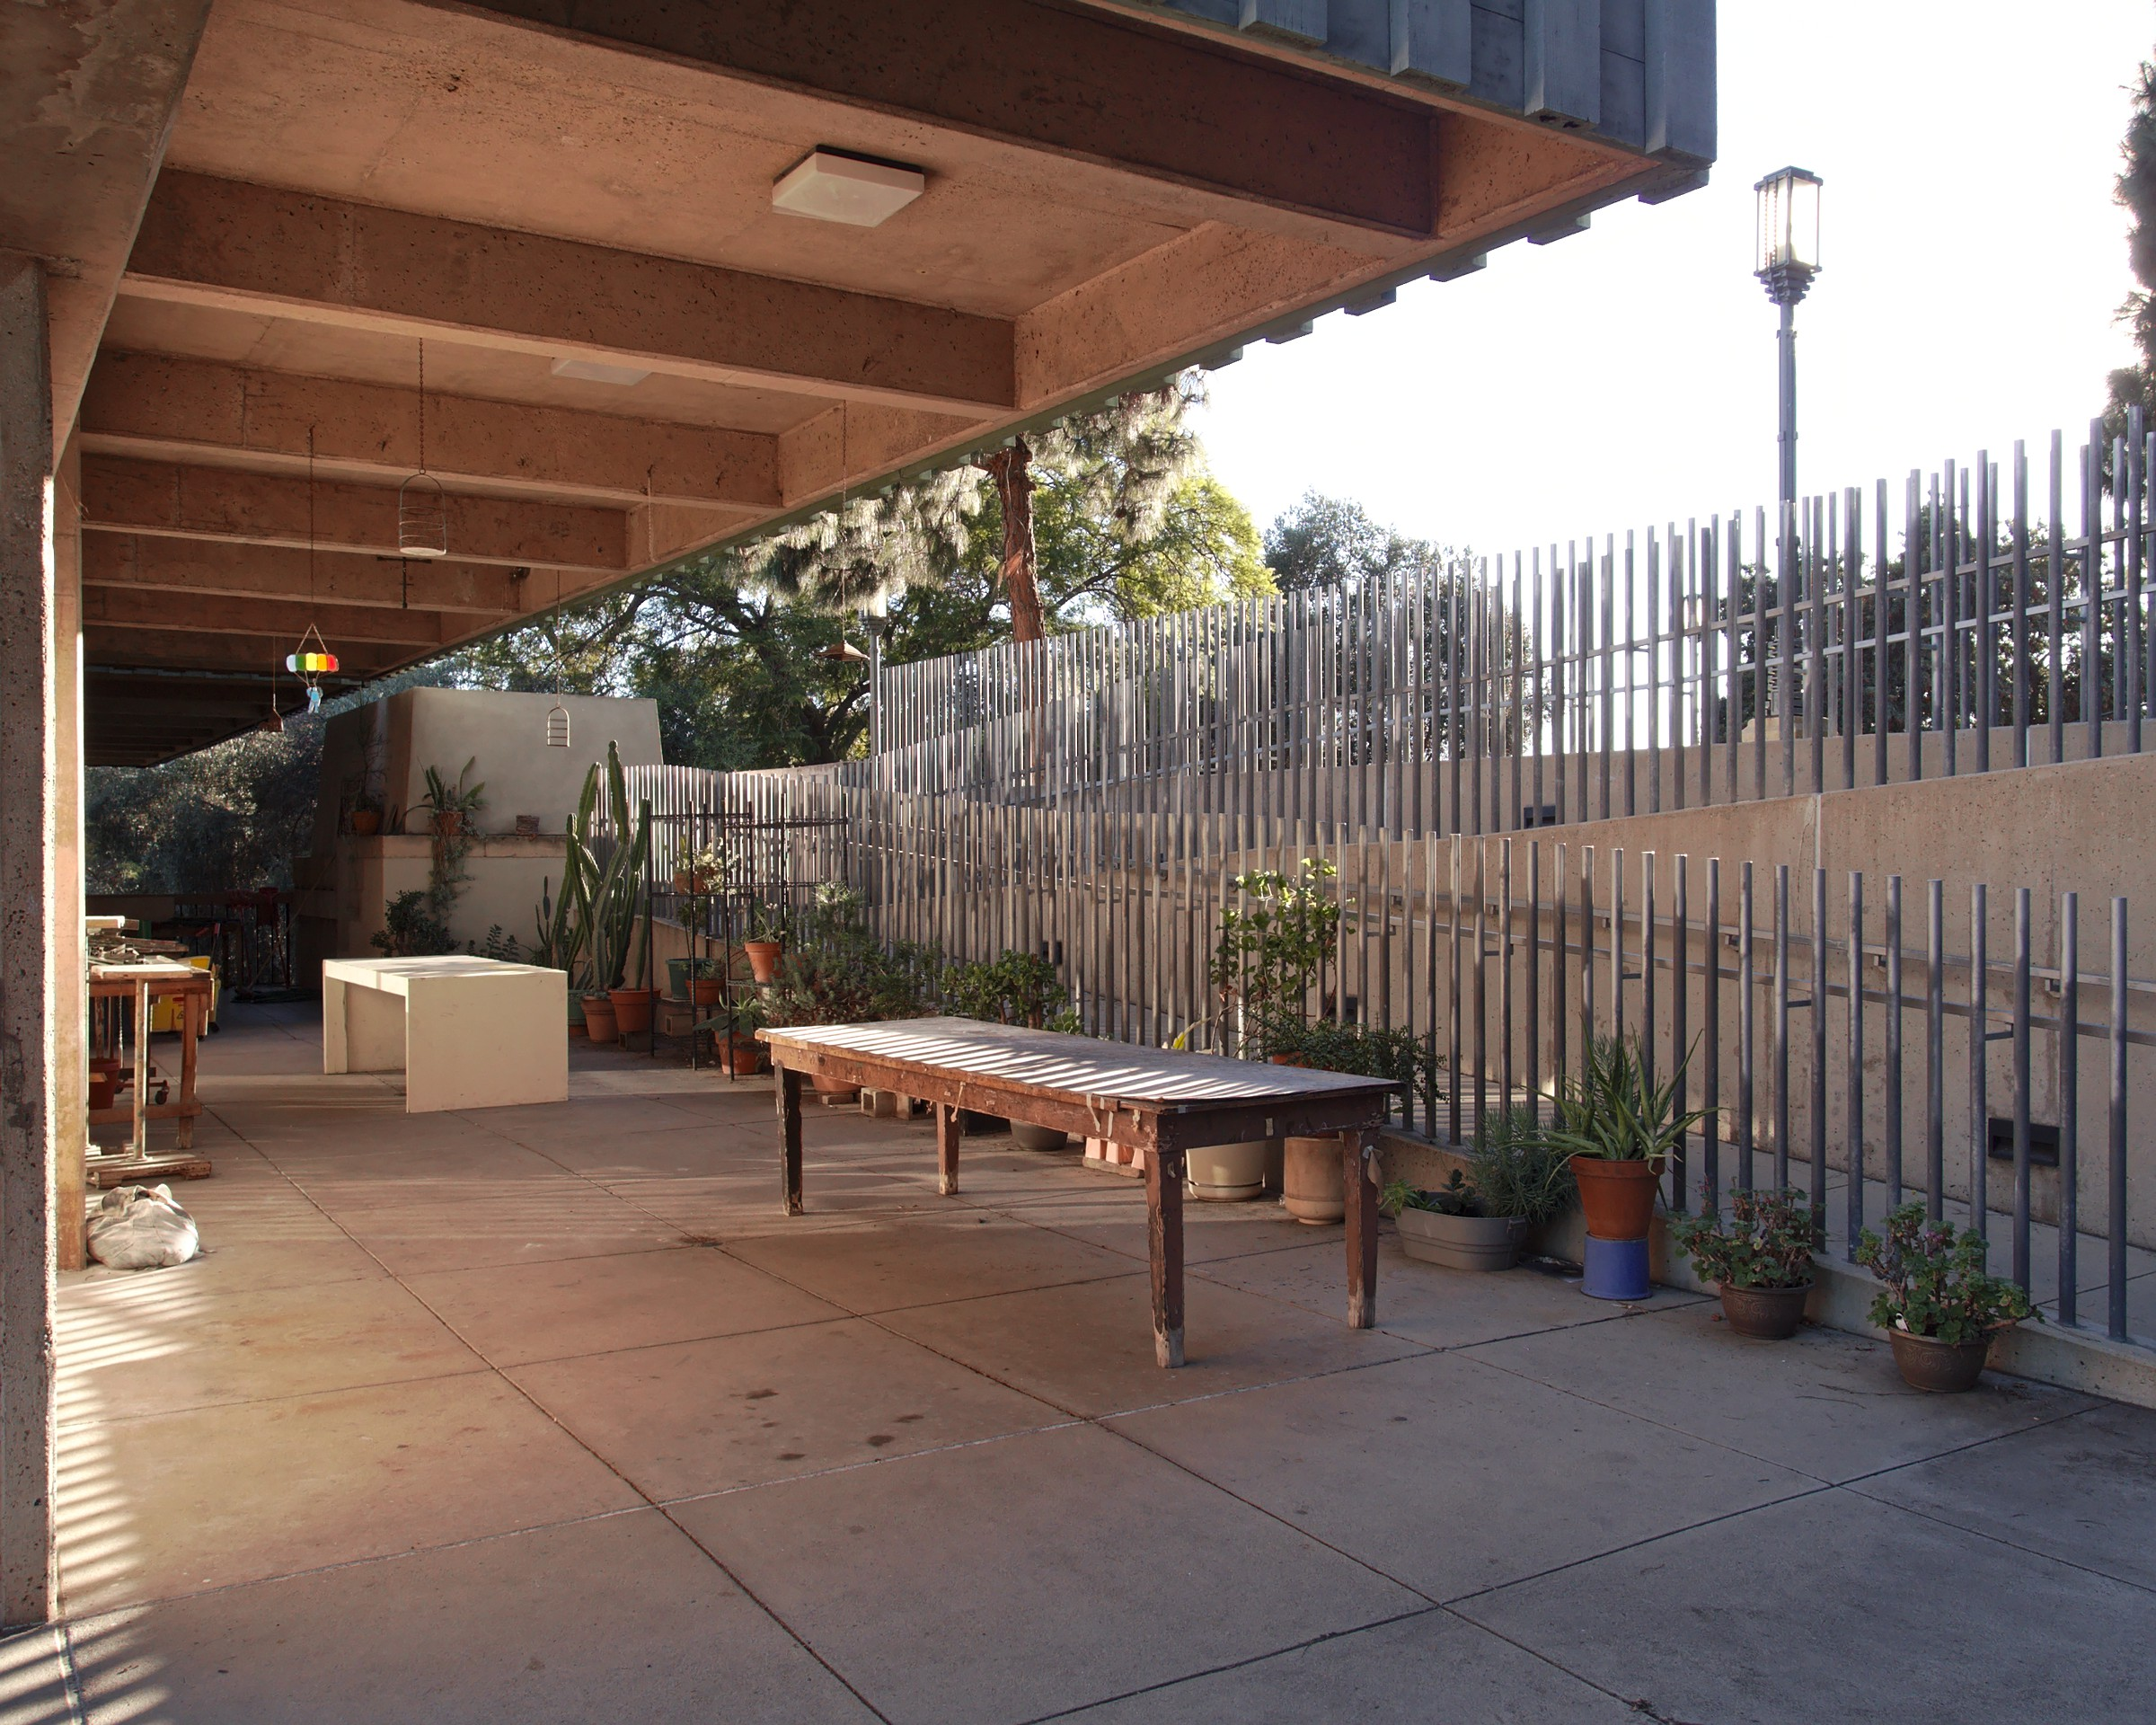 File:Barnsdall Art Center Patio 2015 02 13